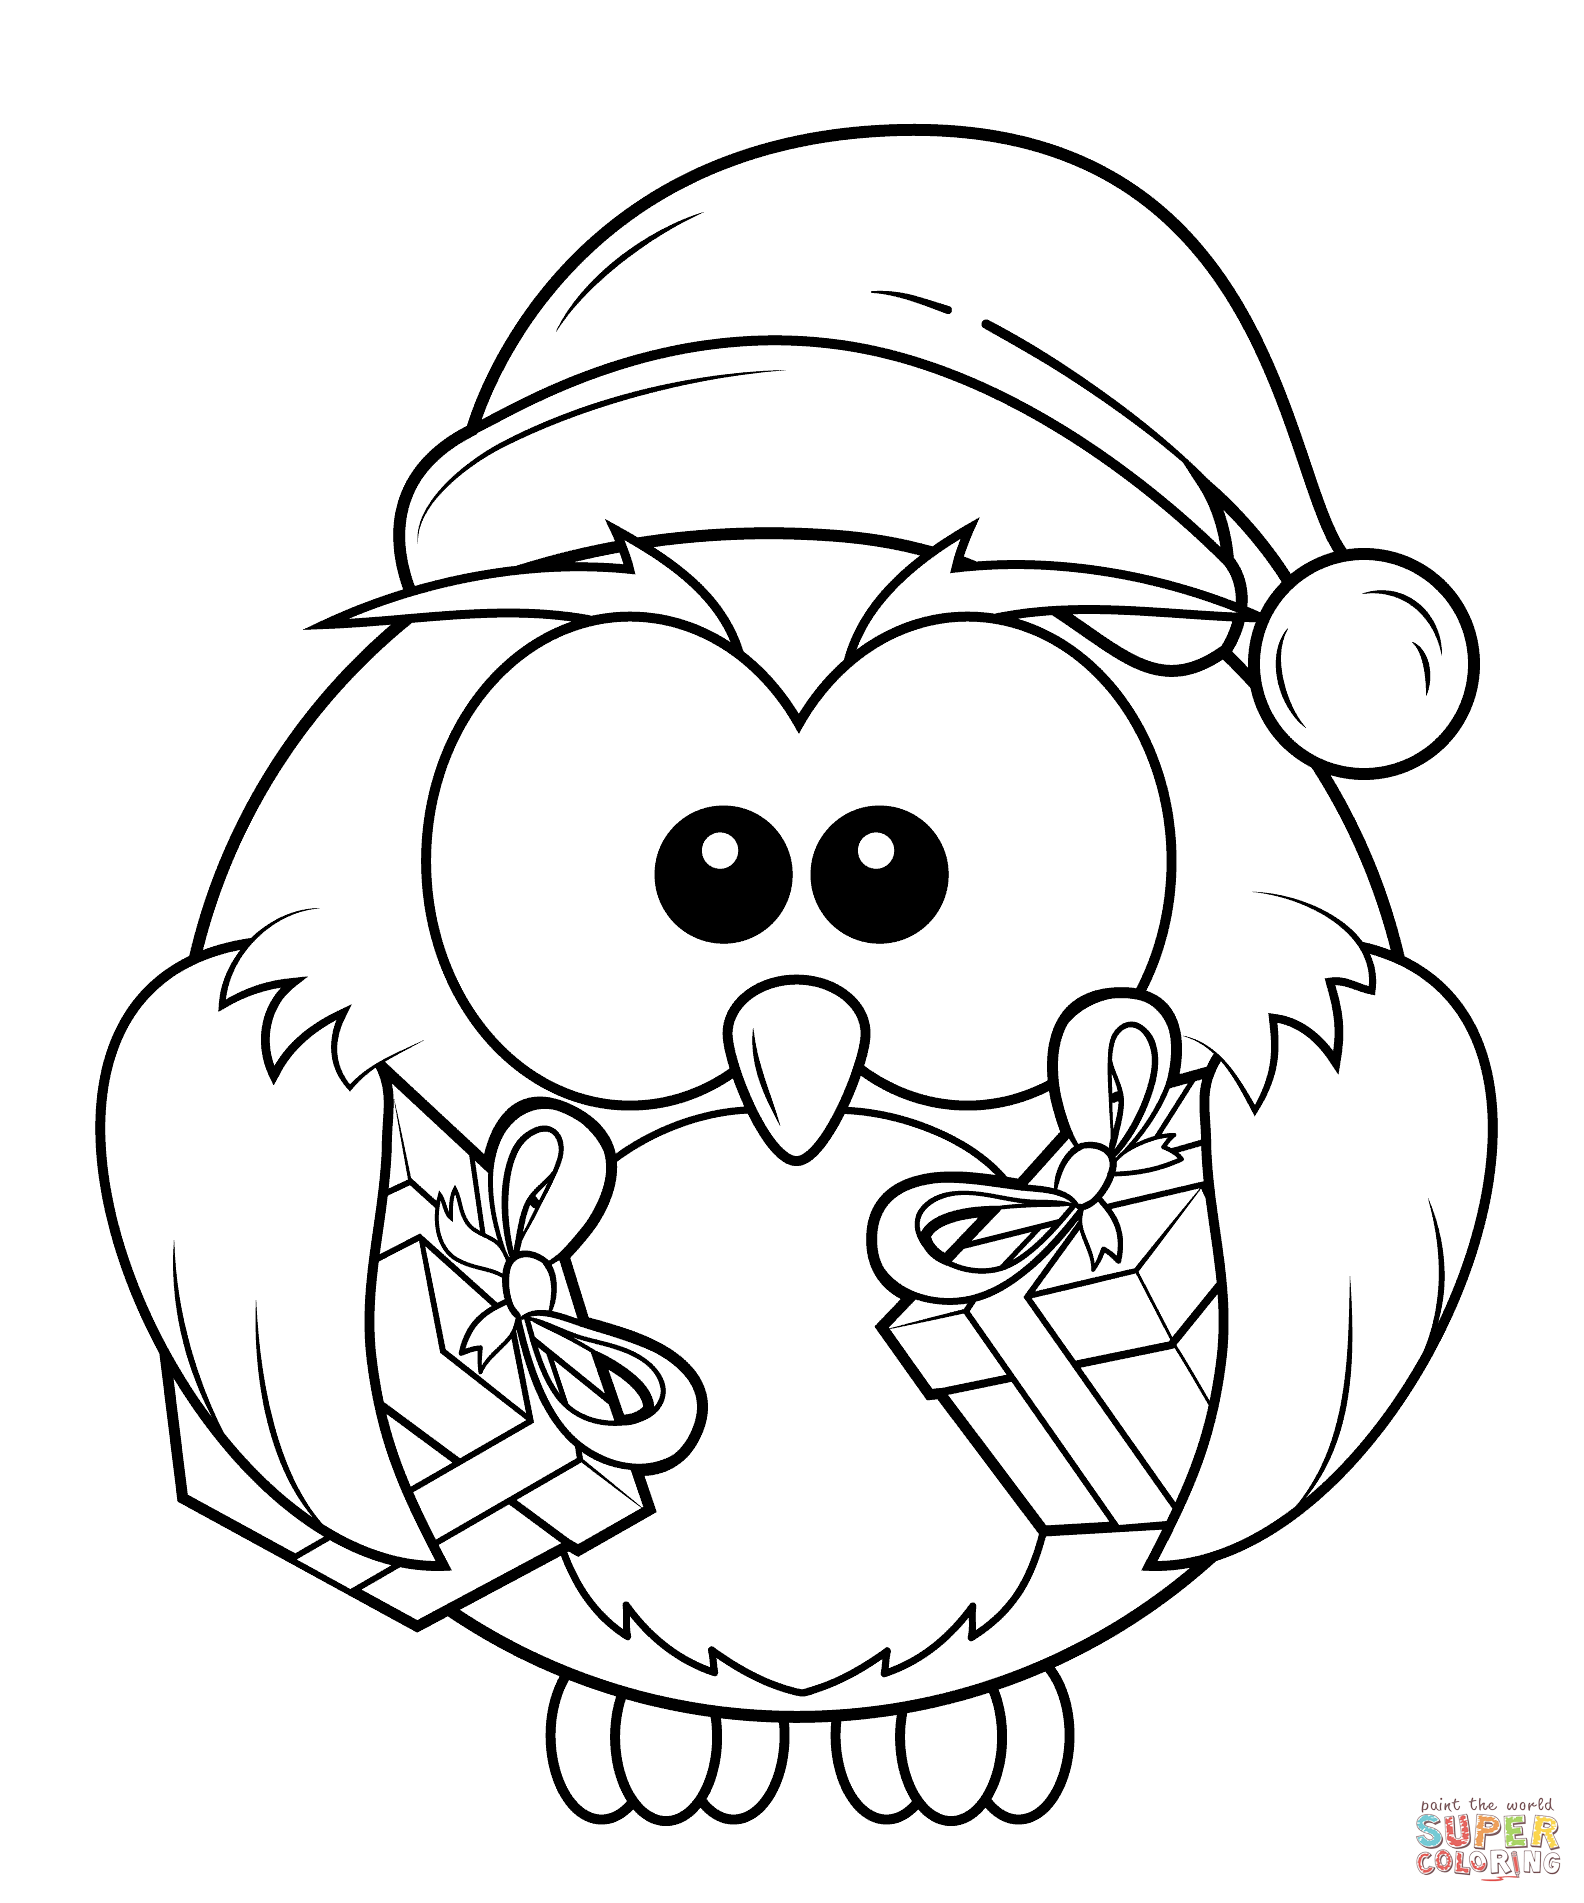 Free Printable Owl Coloring Pages at GetDrawings.com | Free ...